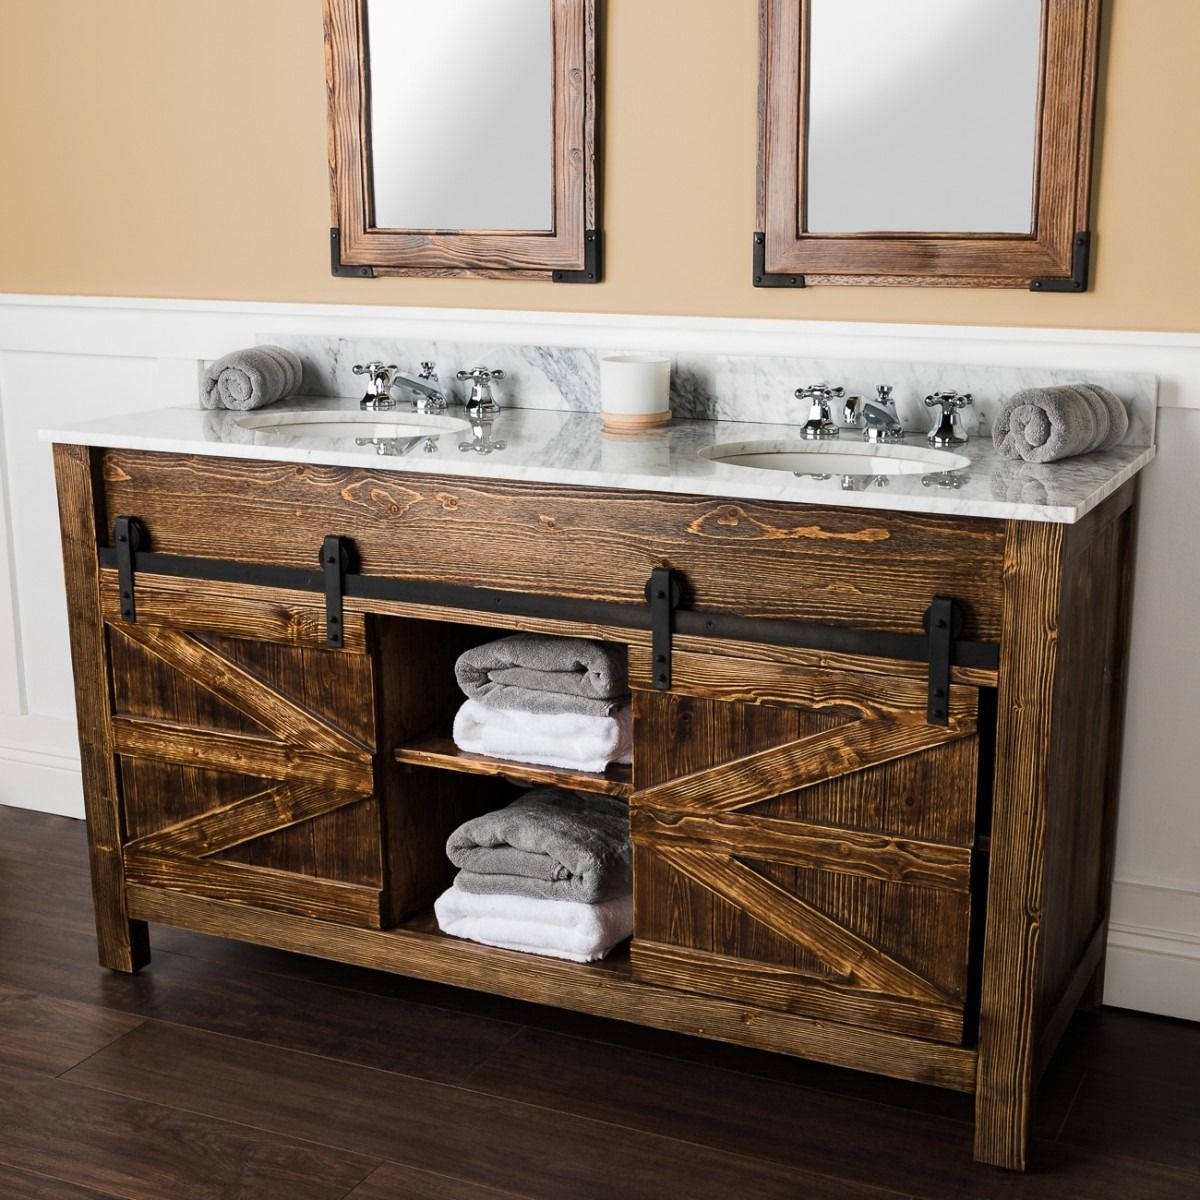 Keep Your Bathroom Organized And In Style With High Quality